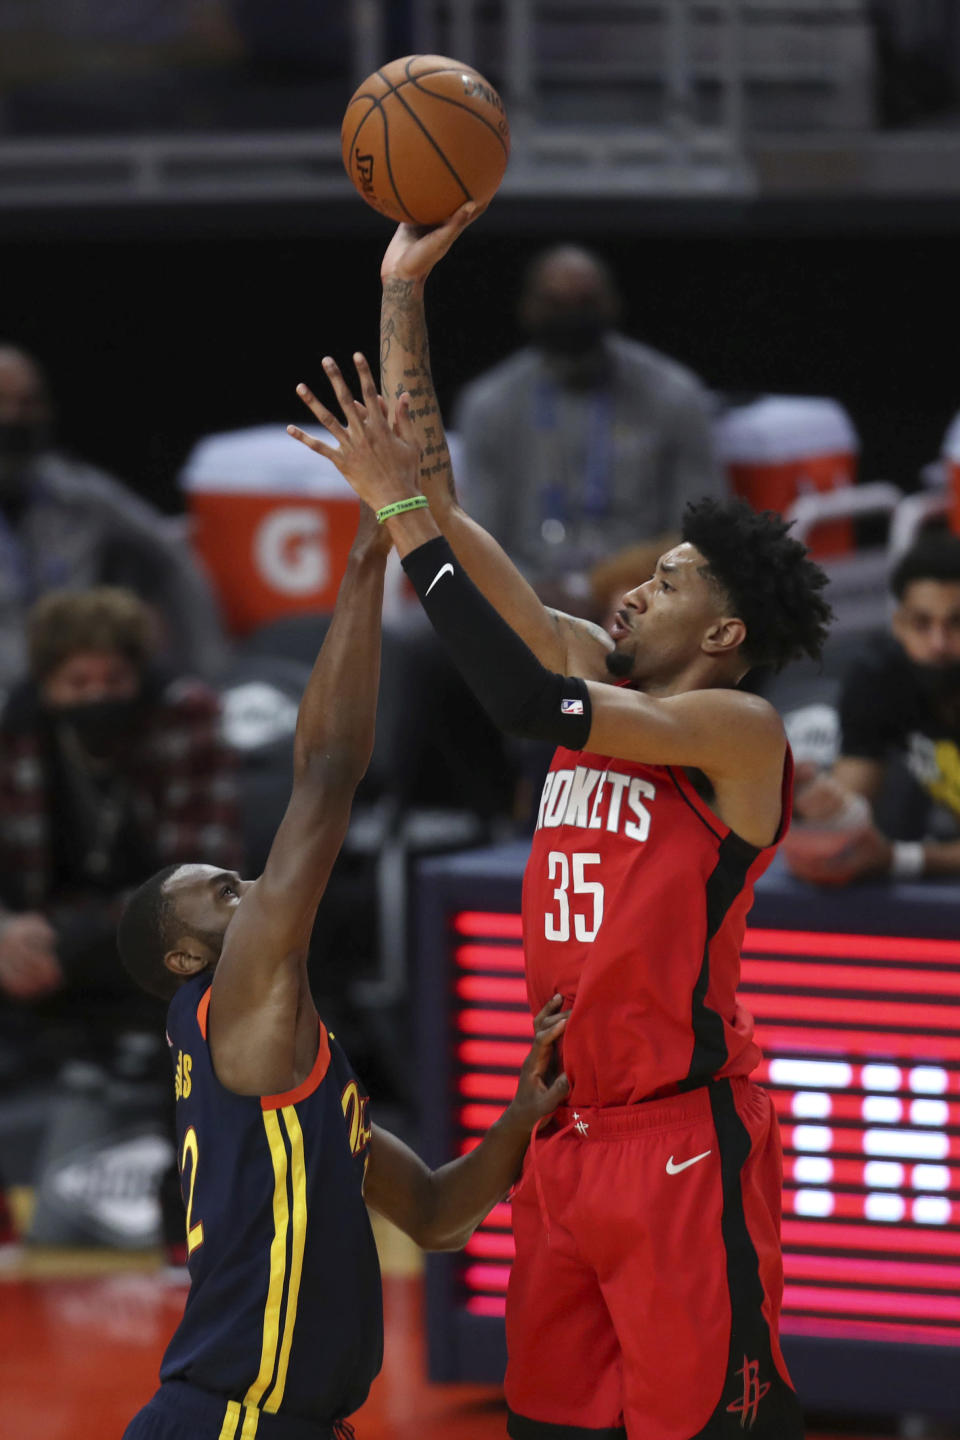 Houston Rockets center Christian Wood, right, shoots over Golden State Warriors forward Andrew Wiggins during the second half of an NBA basketball game in San Francisco, Saturday, April 10, 2021. (AP Photo/Jed Jacobsohn)